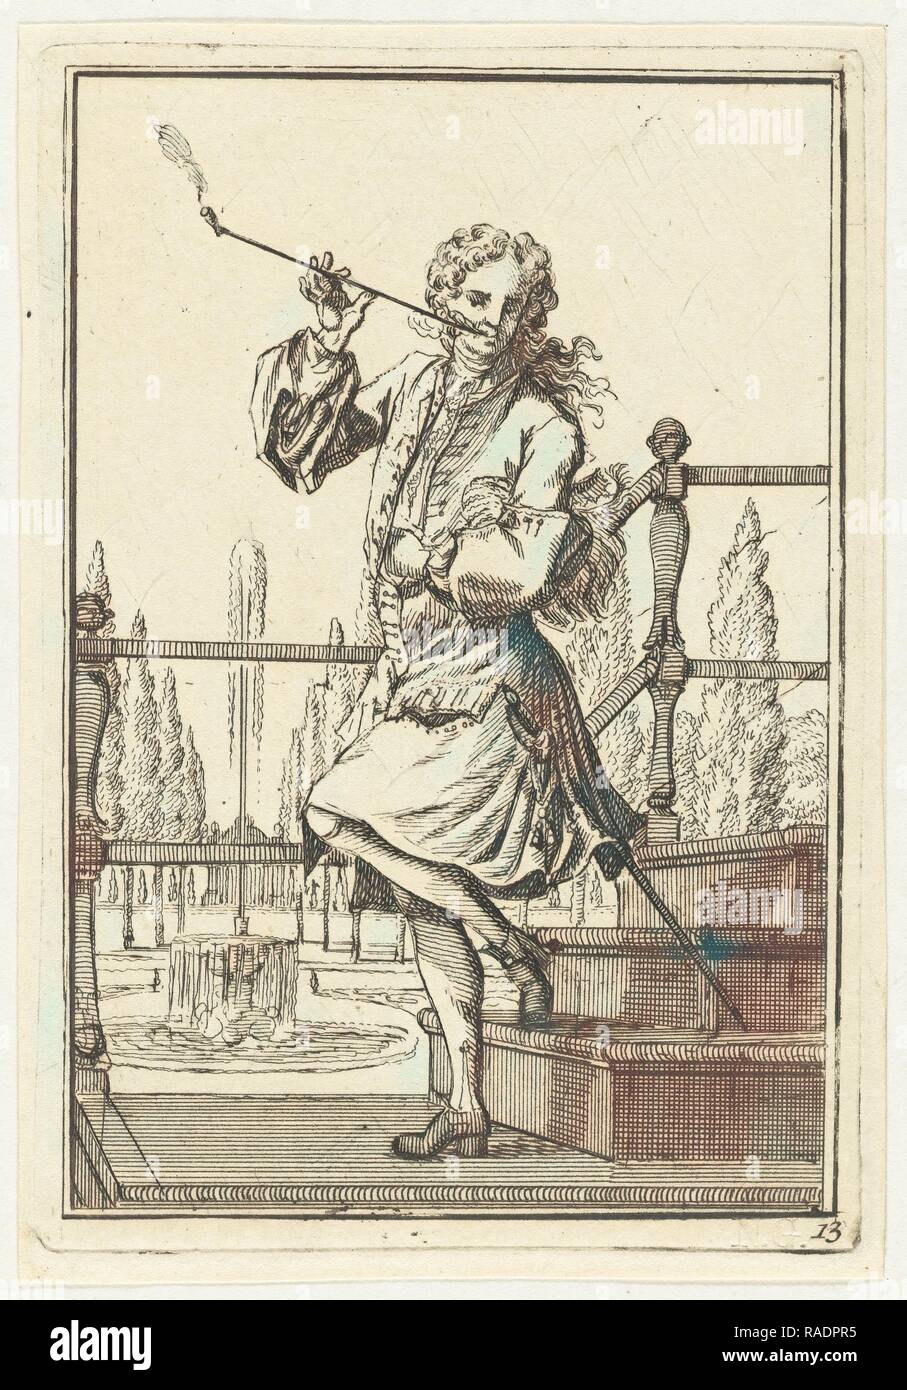 Pipe Smoking Man, Adolf van der Laan, c. 1710 - 175. Reimagined by Gibon. Classic art with a modern twist reimagined - Stock Image